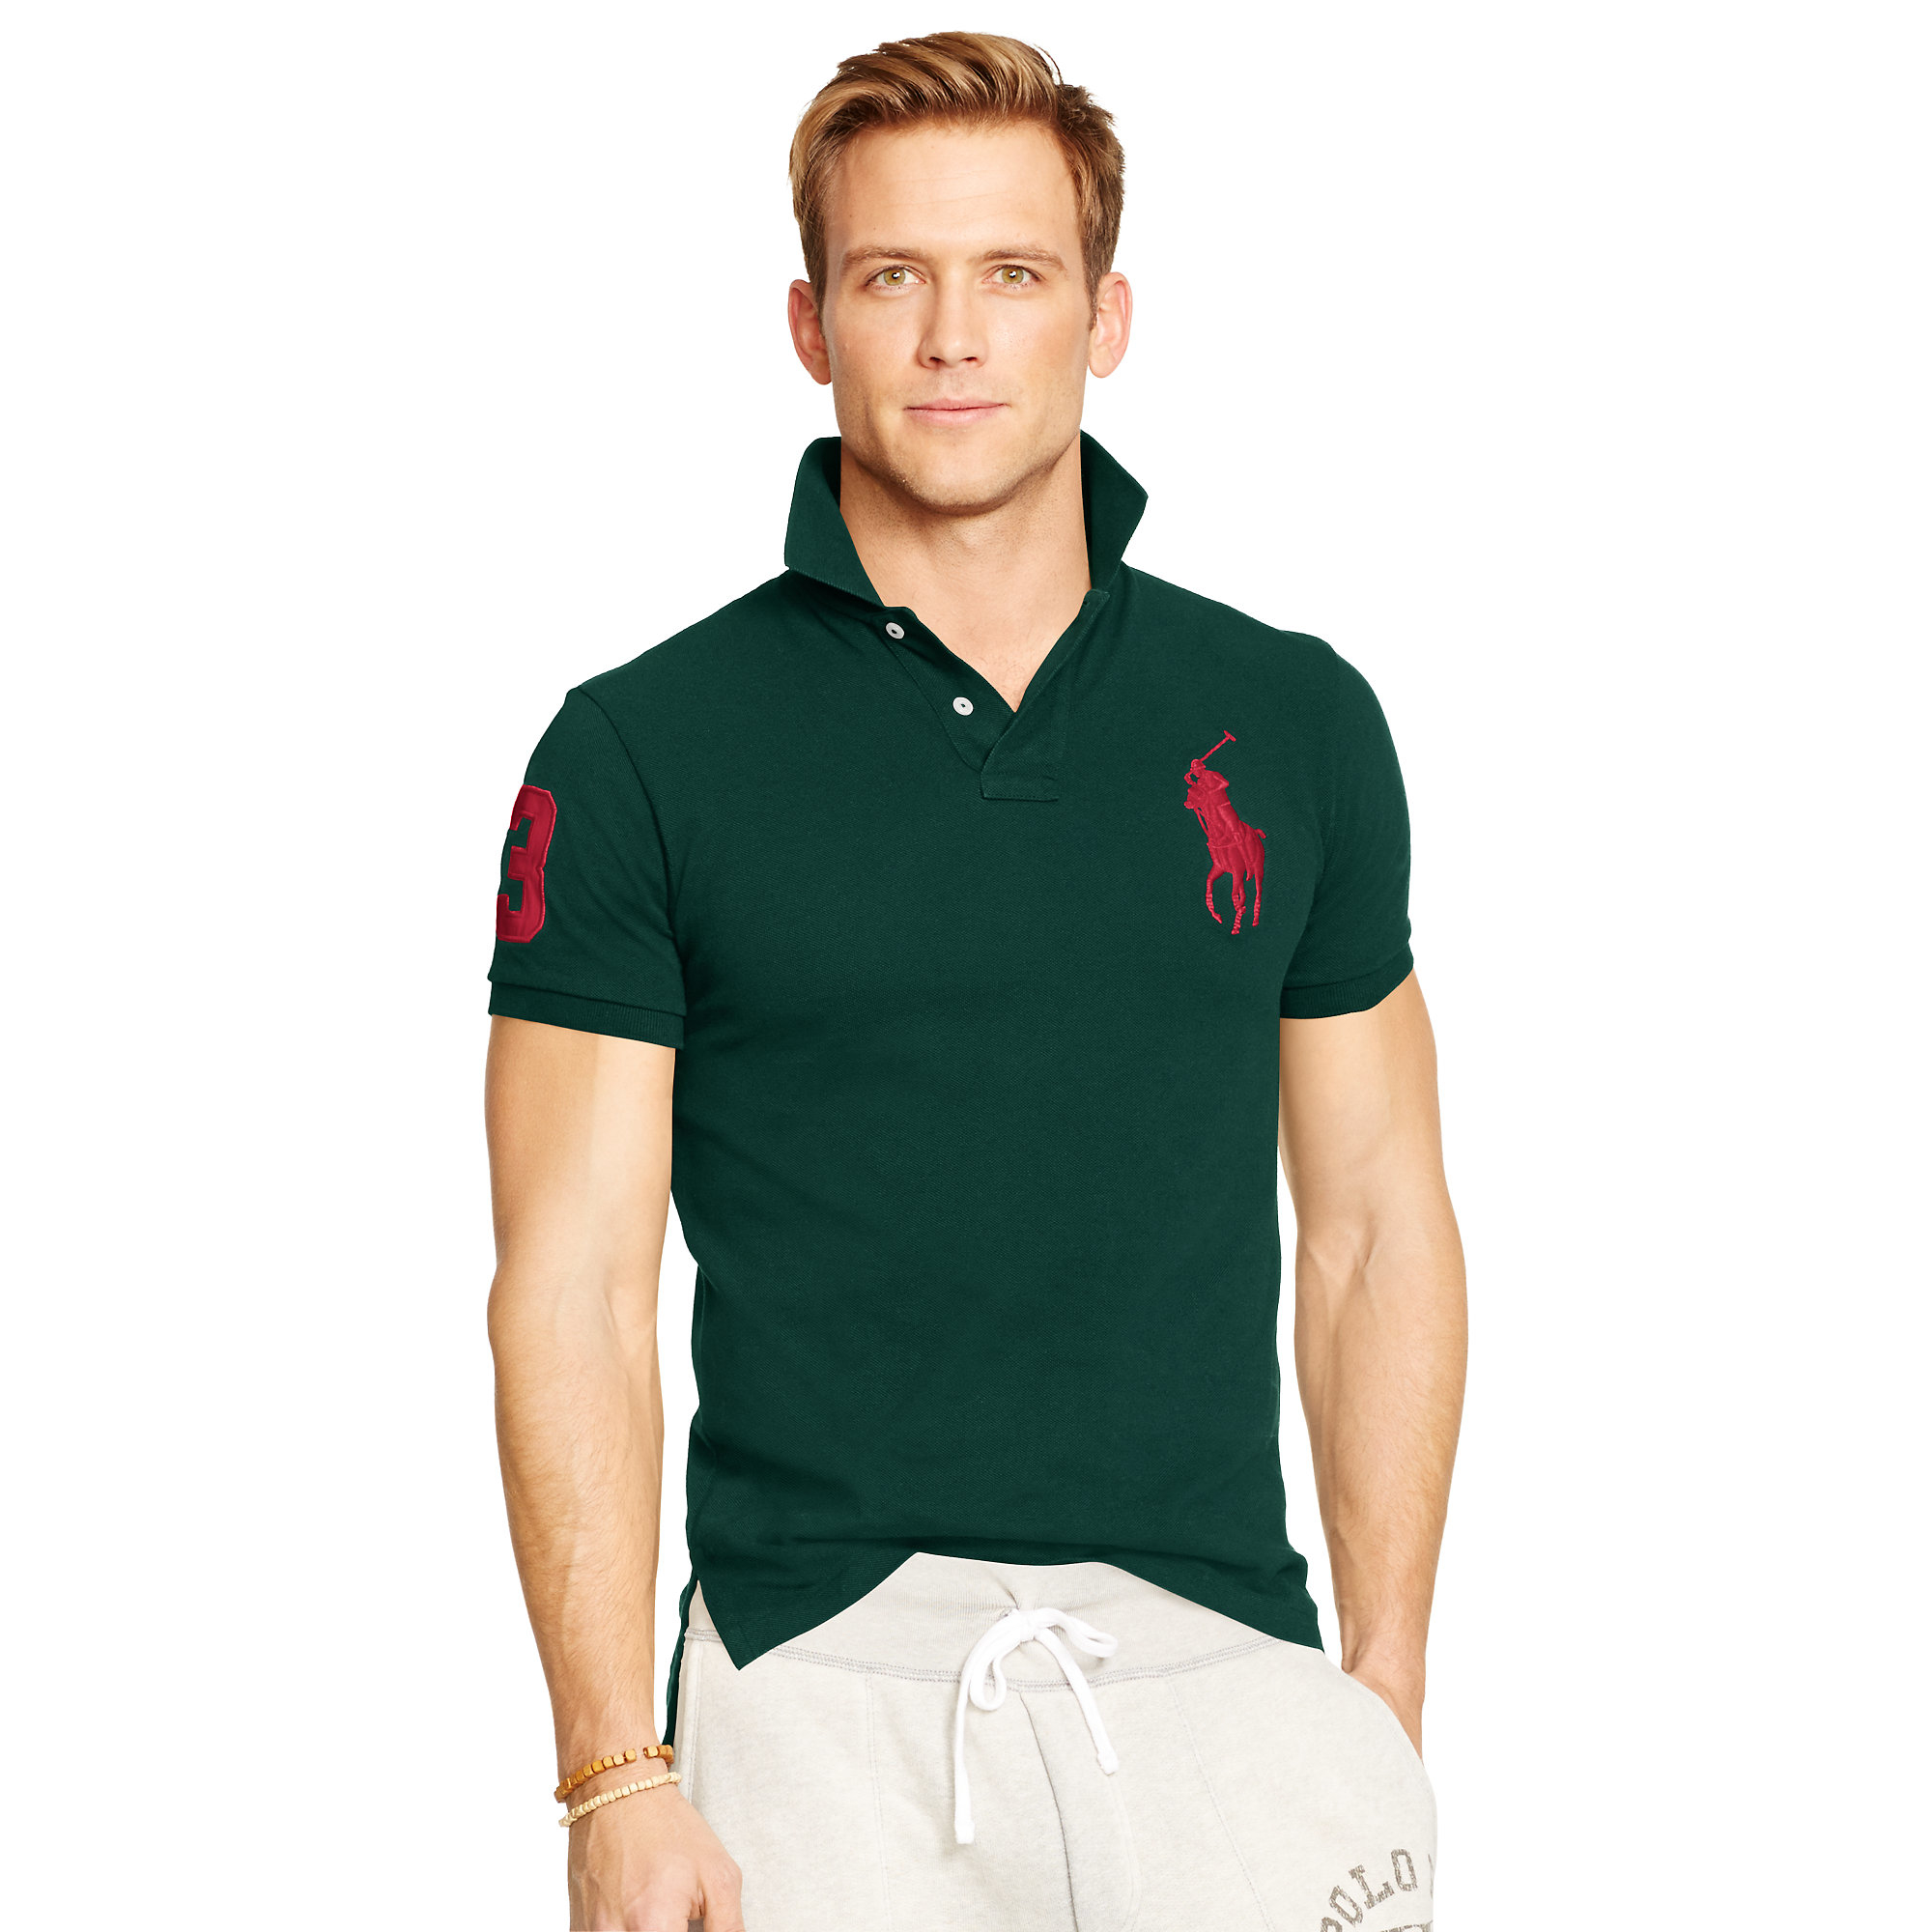 4a07cadc1c818 ... aliexpress lyst polo ralph lauren custom fit big pony polo in green for  men 95f04 0bd20